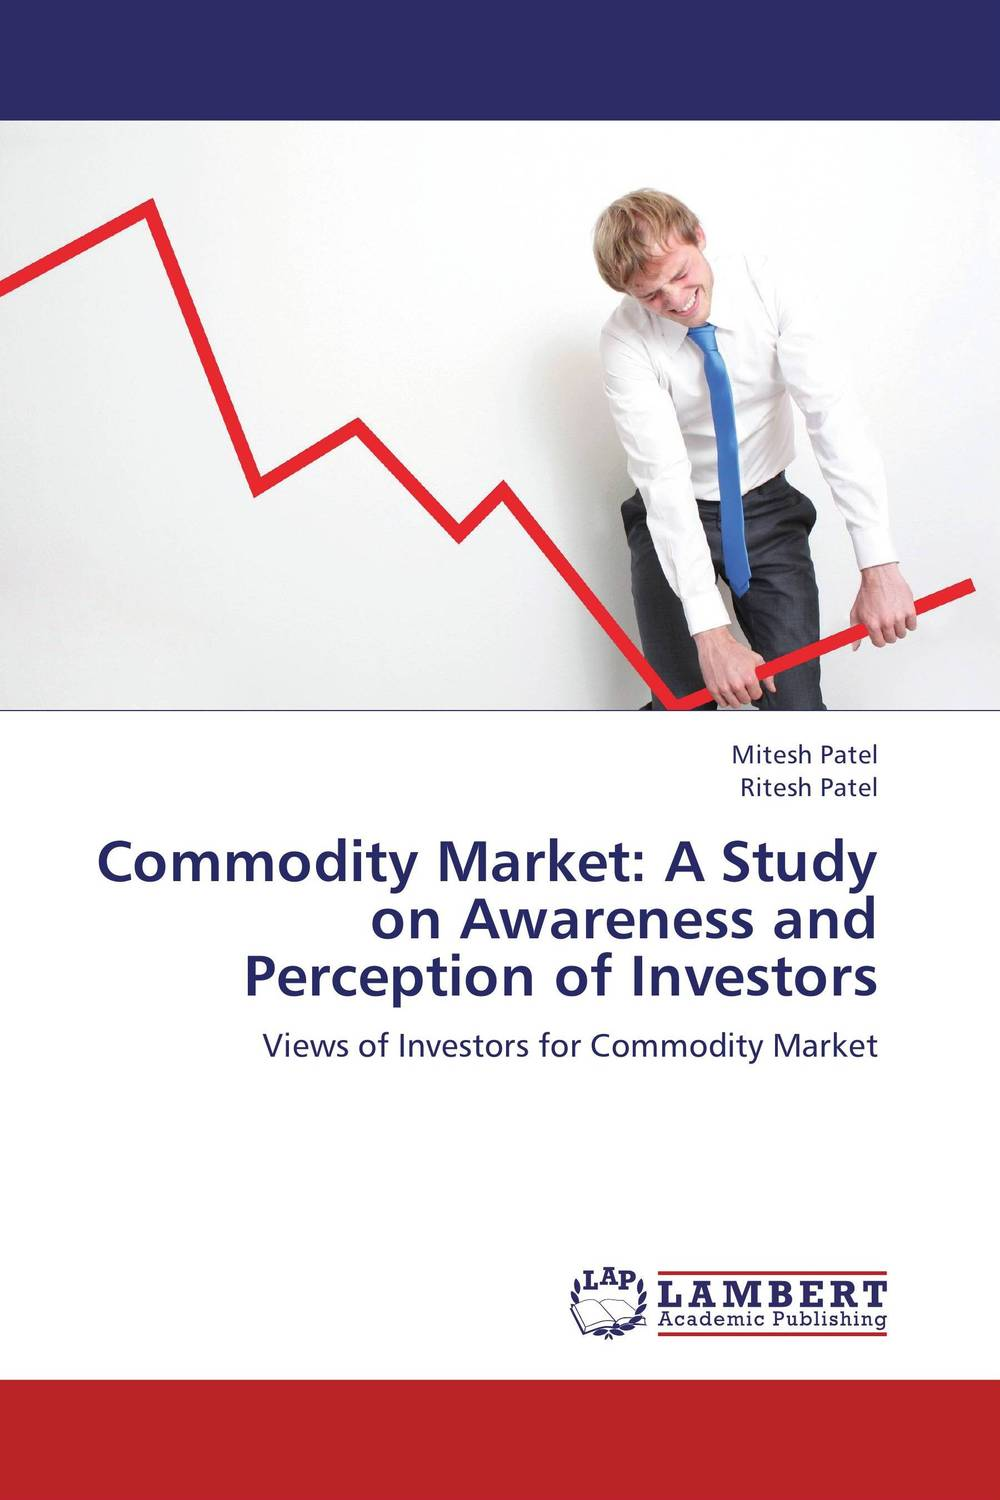 Commodity Market: A Study on Awareness and Perception of Investors